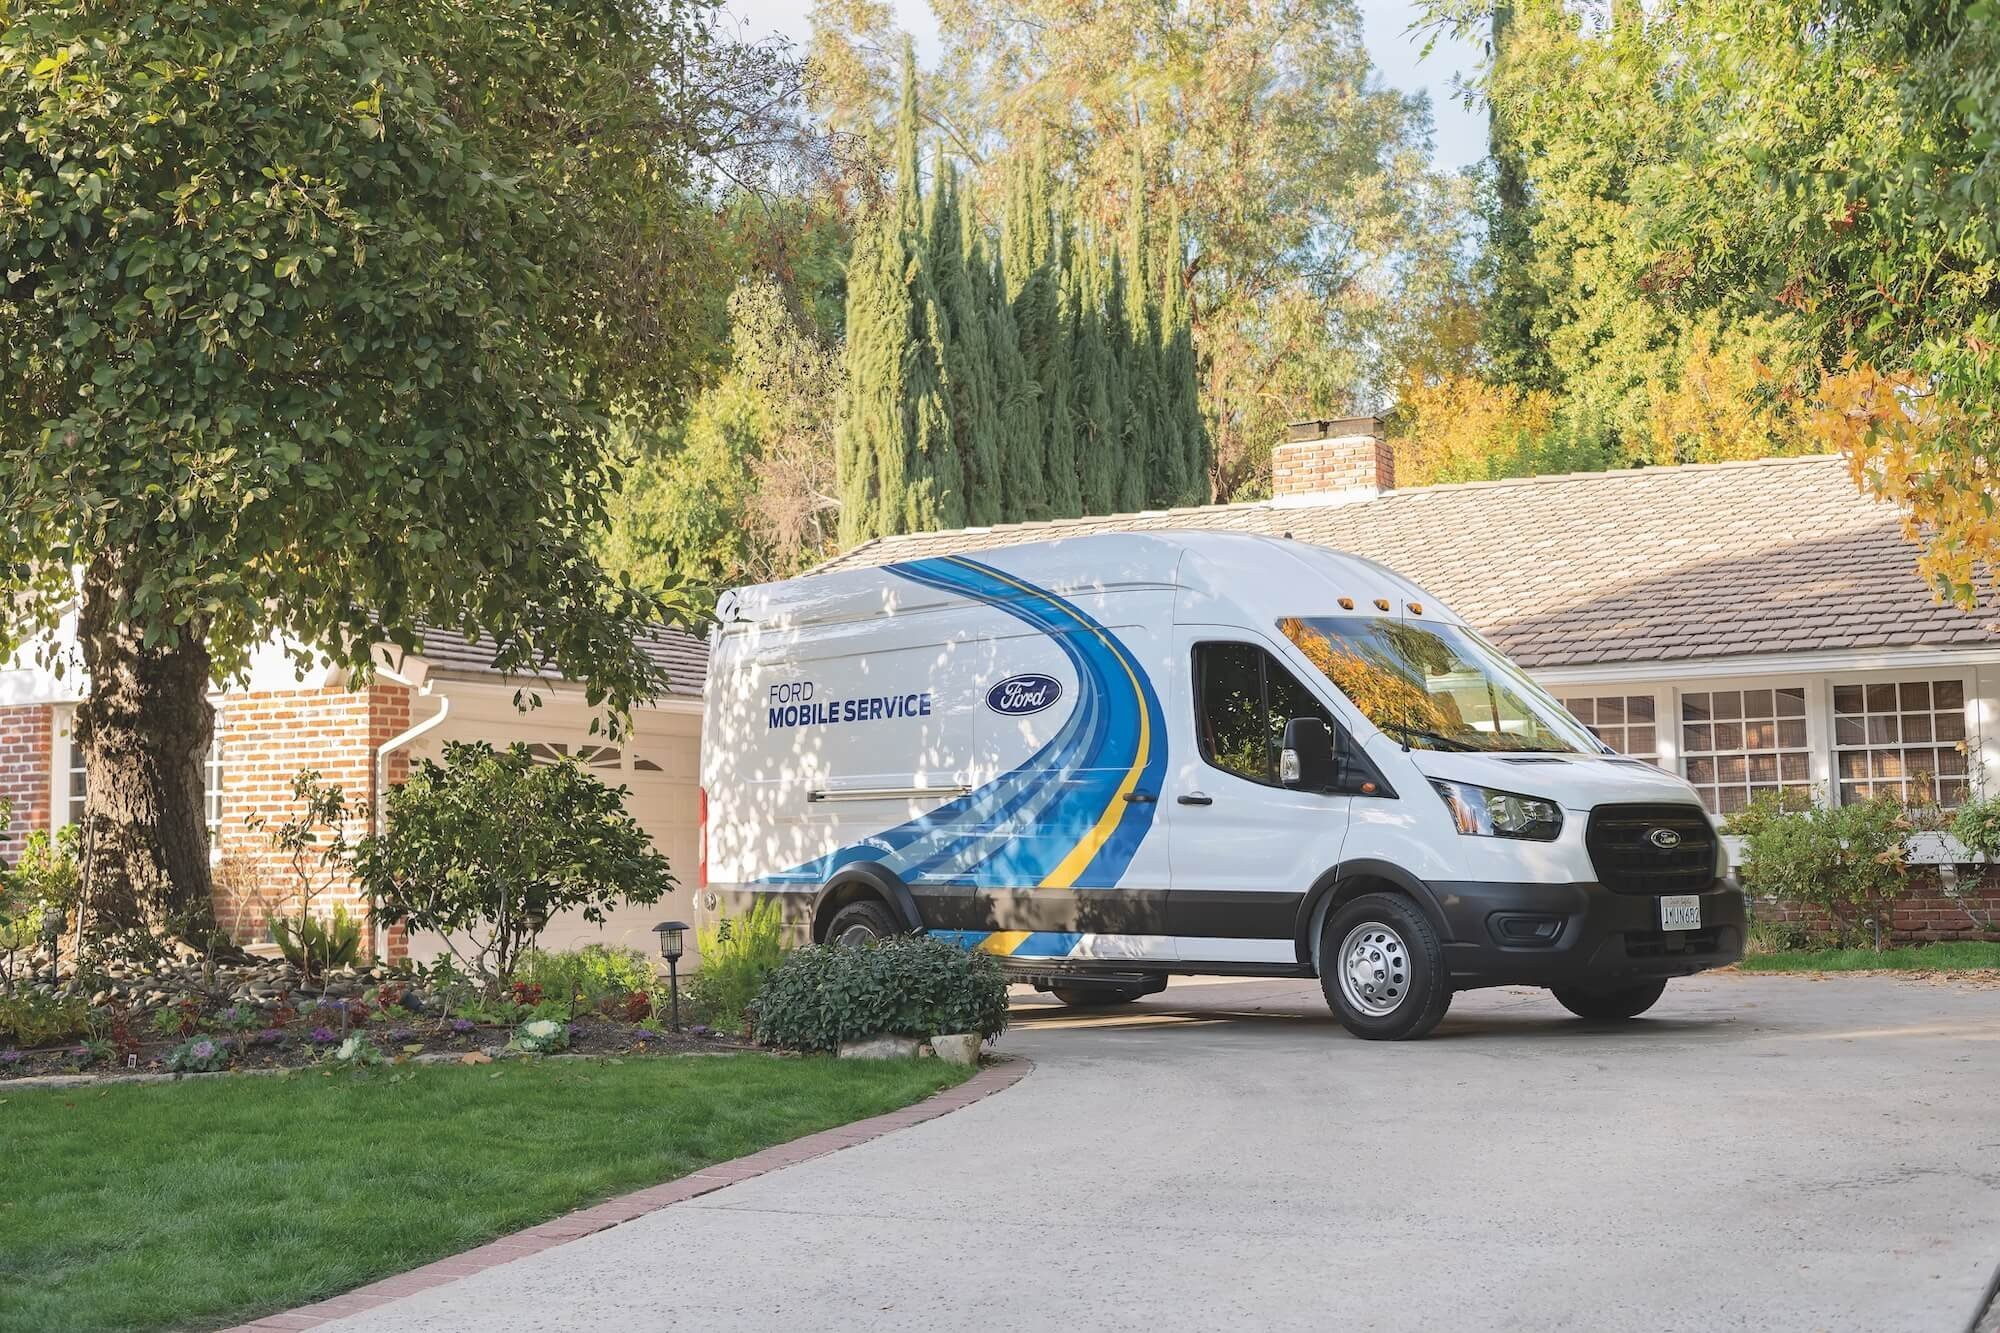 Ford Mobile Service in Driveway - Mullinax Ford of Central Florida